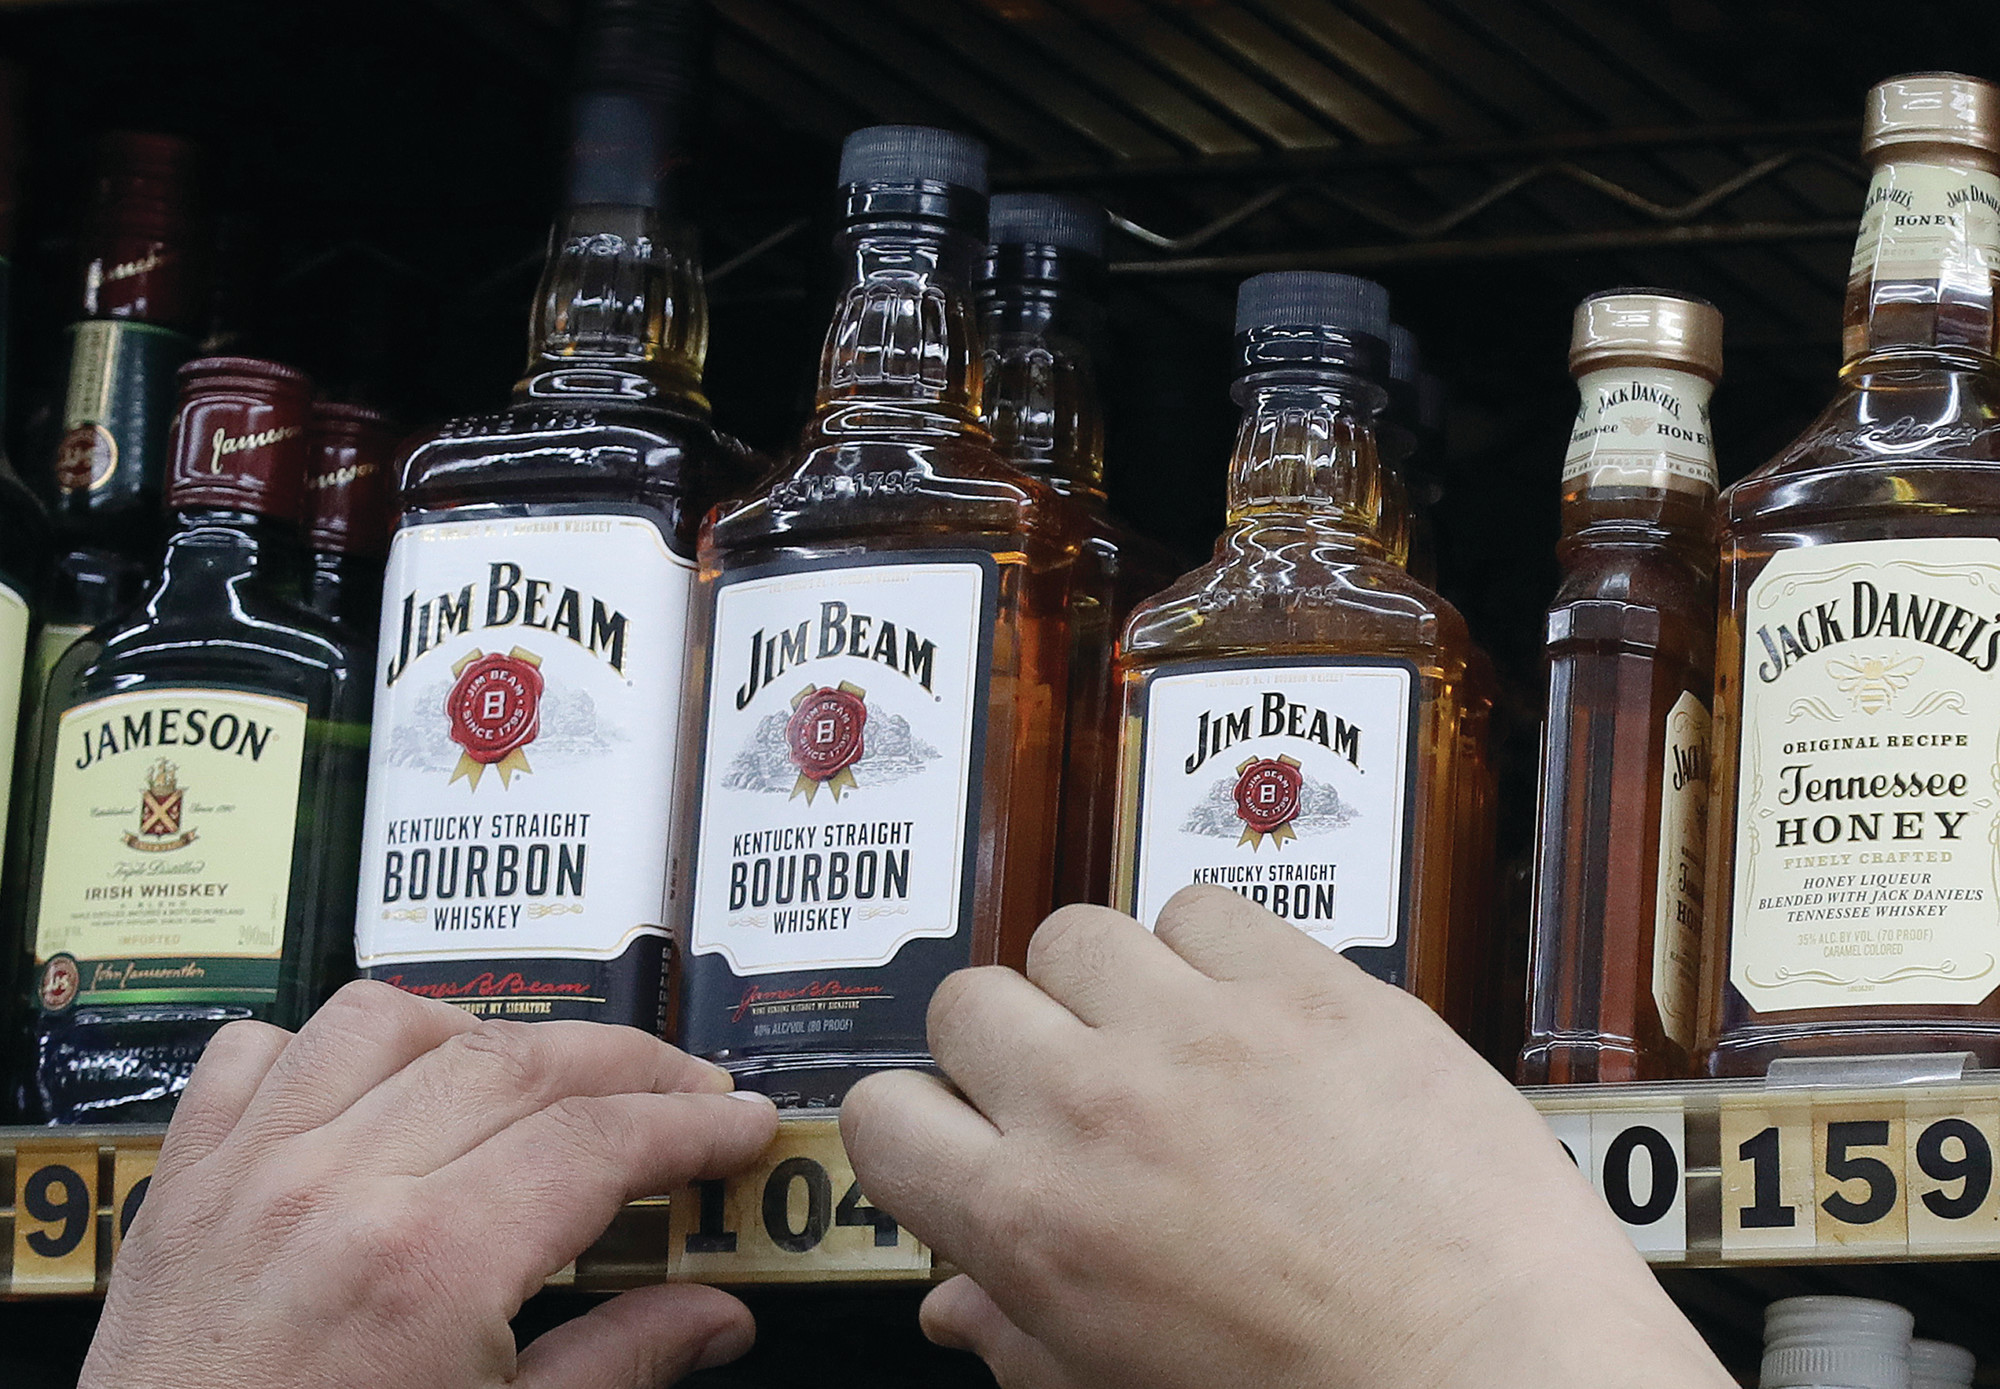 THE ASSOCIATED PRESSA man adjusts prices under bottles of Jim Beam bourbon whiskey displayed at Rossi's Deli in San Francisco. After the U.S. imposed 25 percent tariffs on $34 billion worth of Chinese goods, China retaliated by imposing tariffs on the same amount of U.S. products including whiskey.